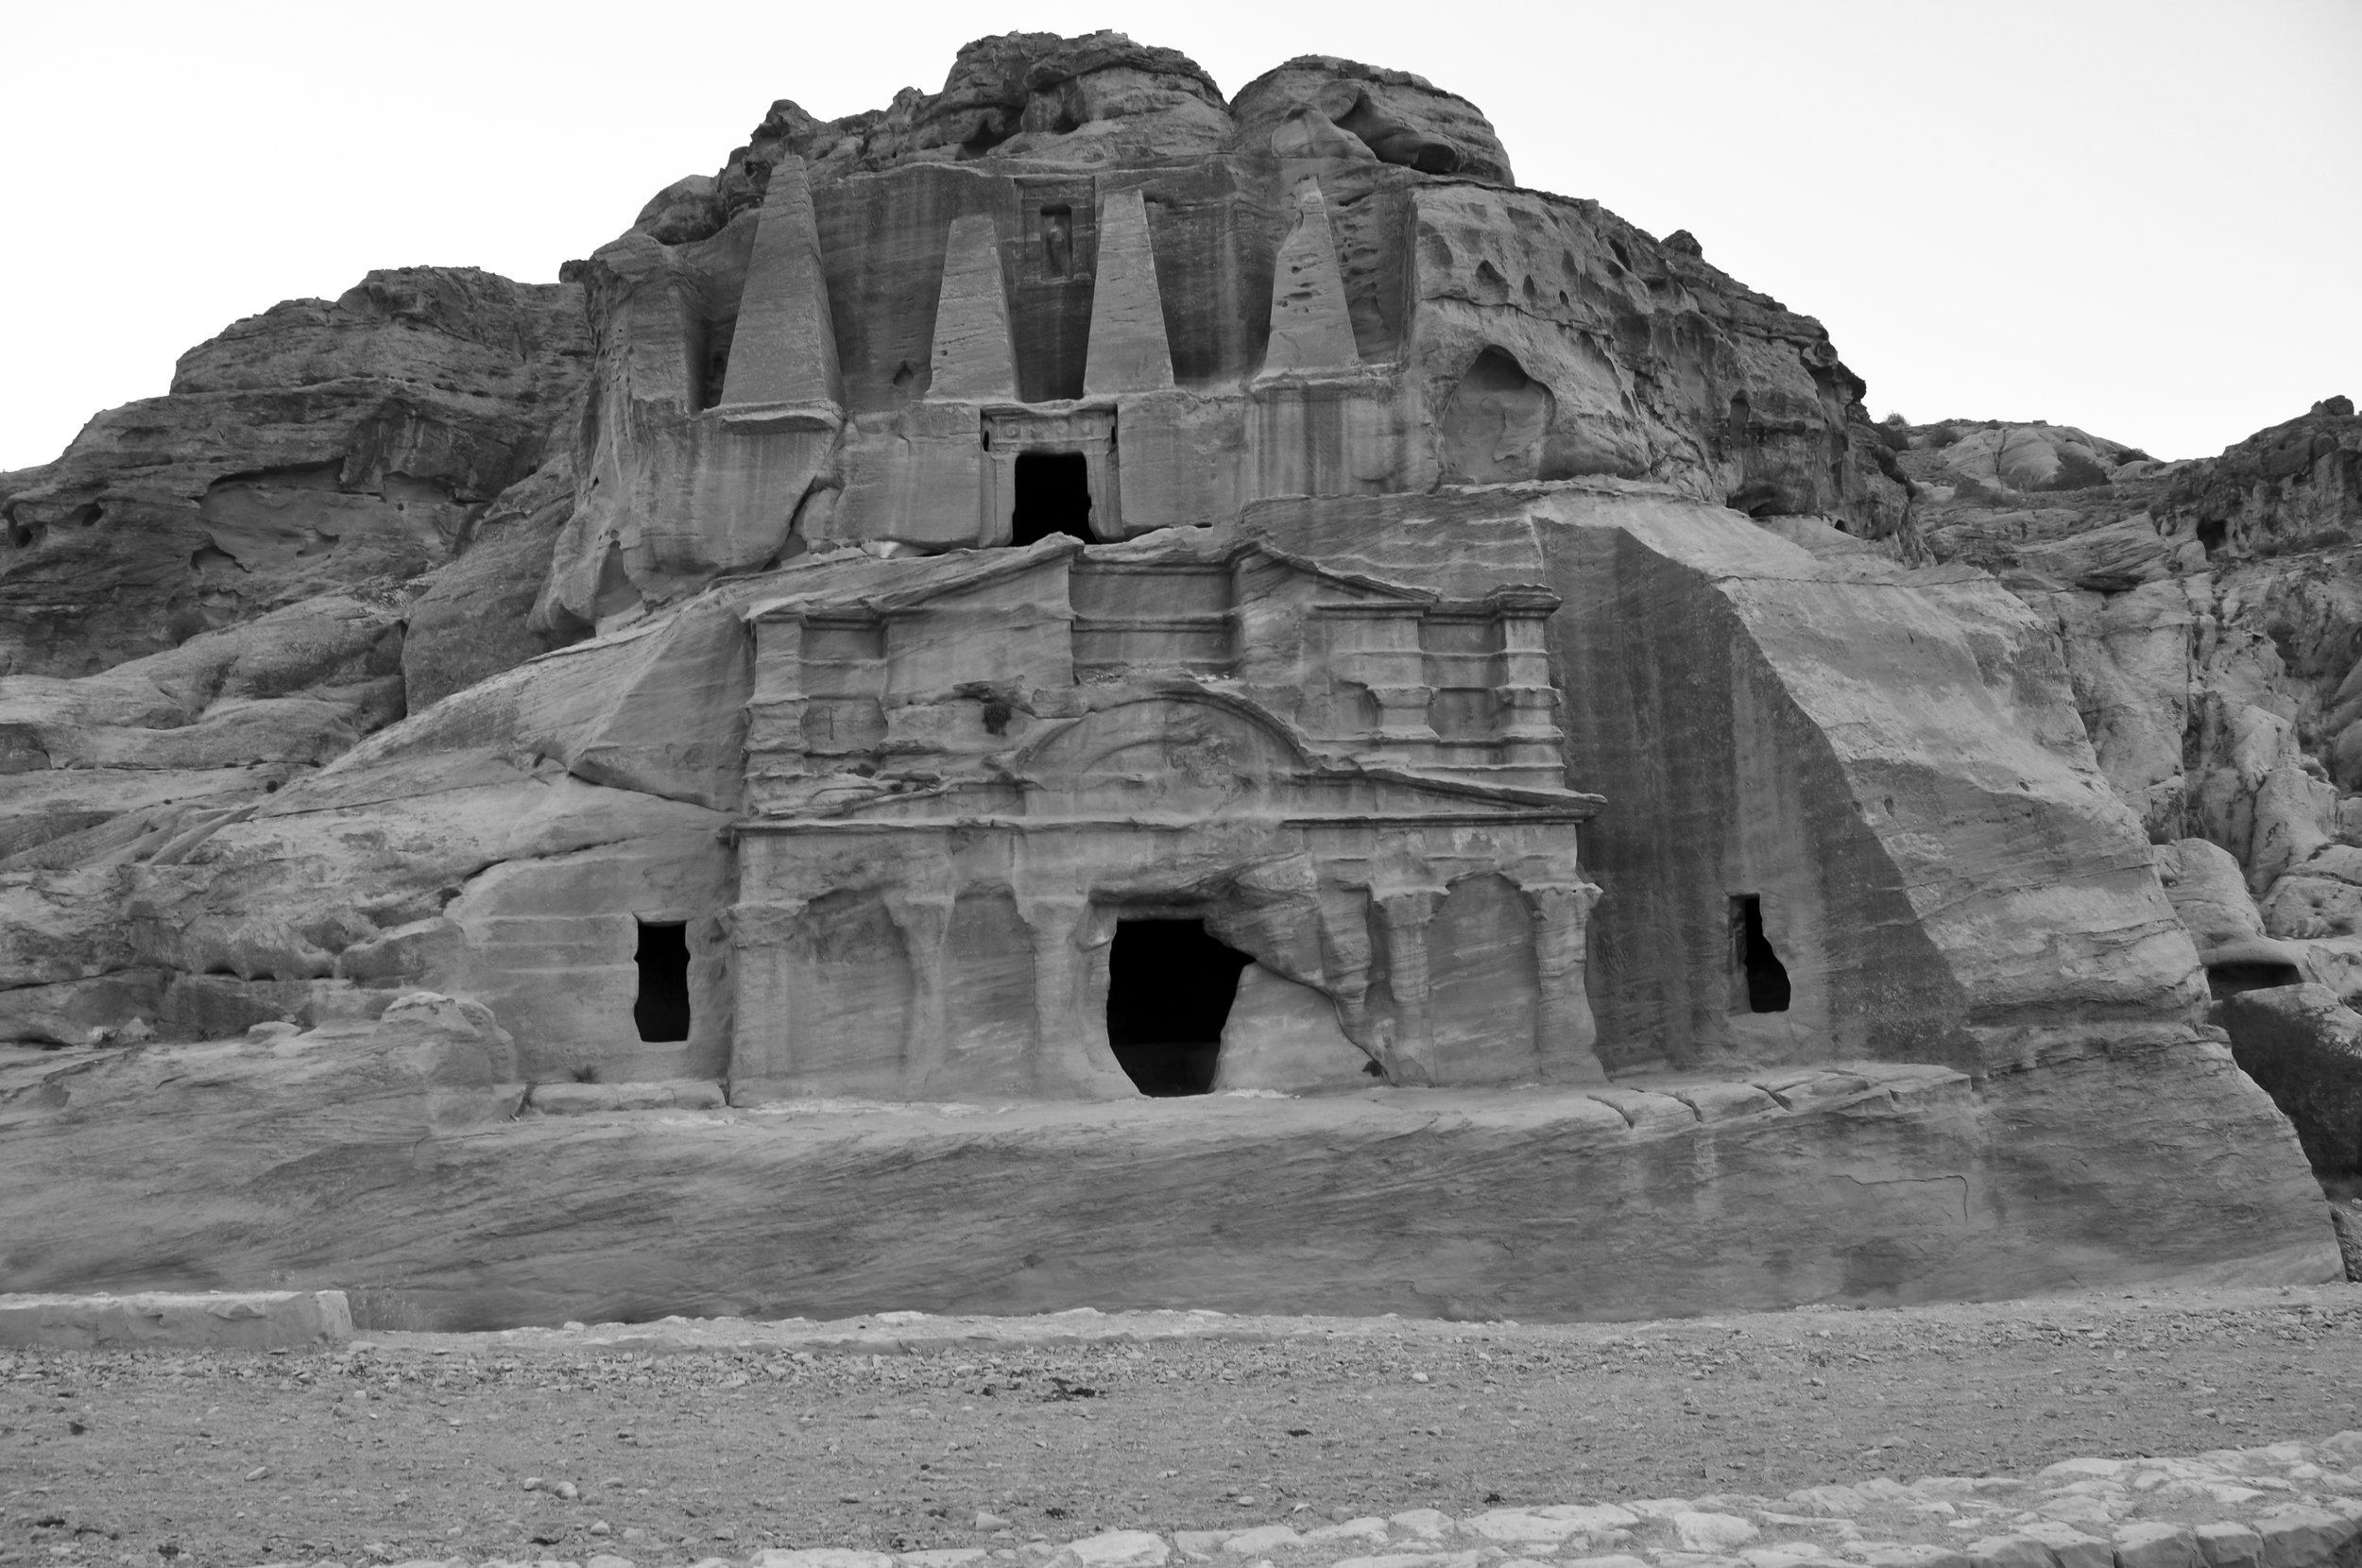 Petra - Obelisk Tomb and the Triclinium